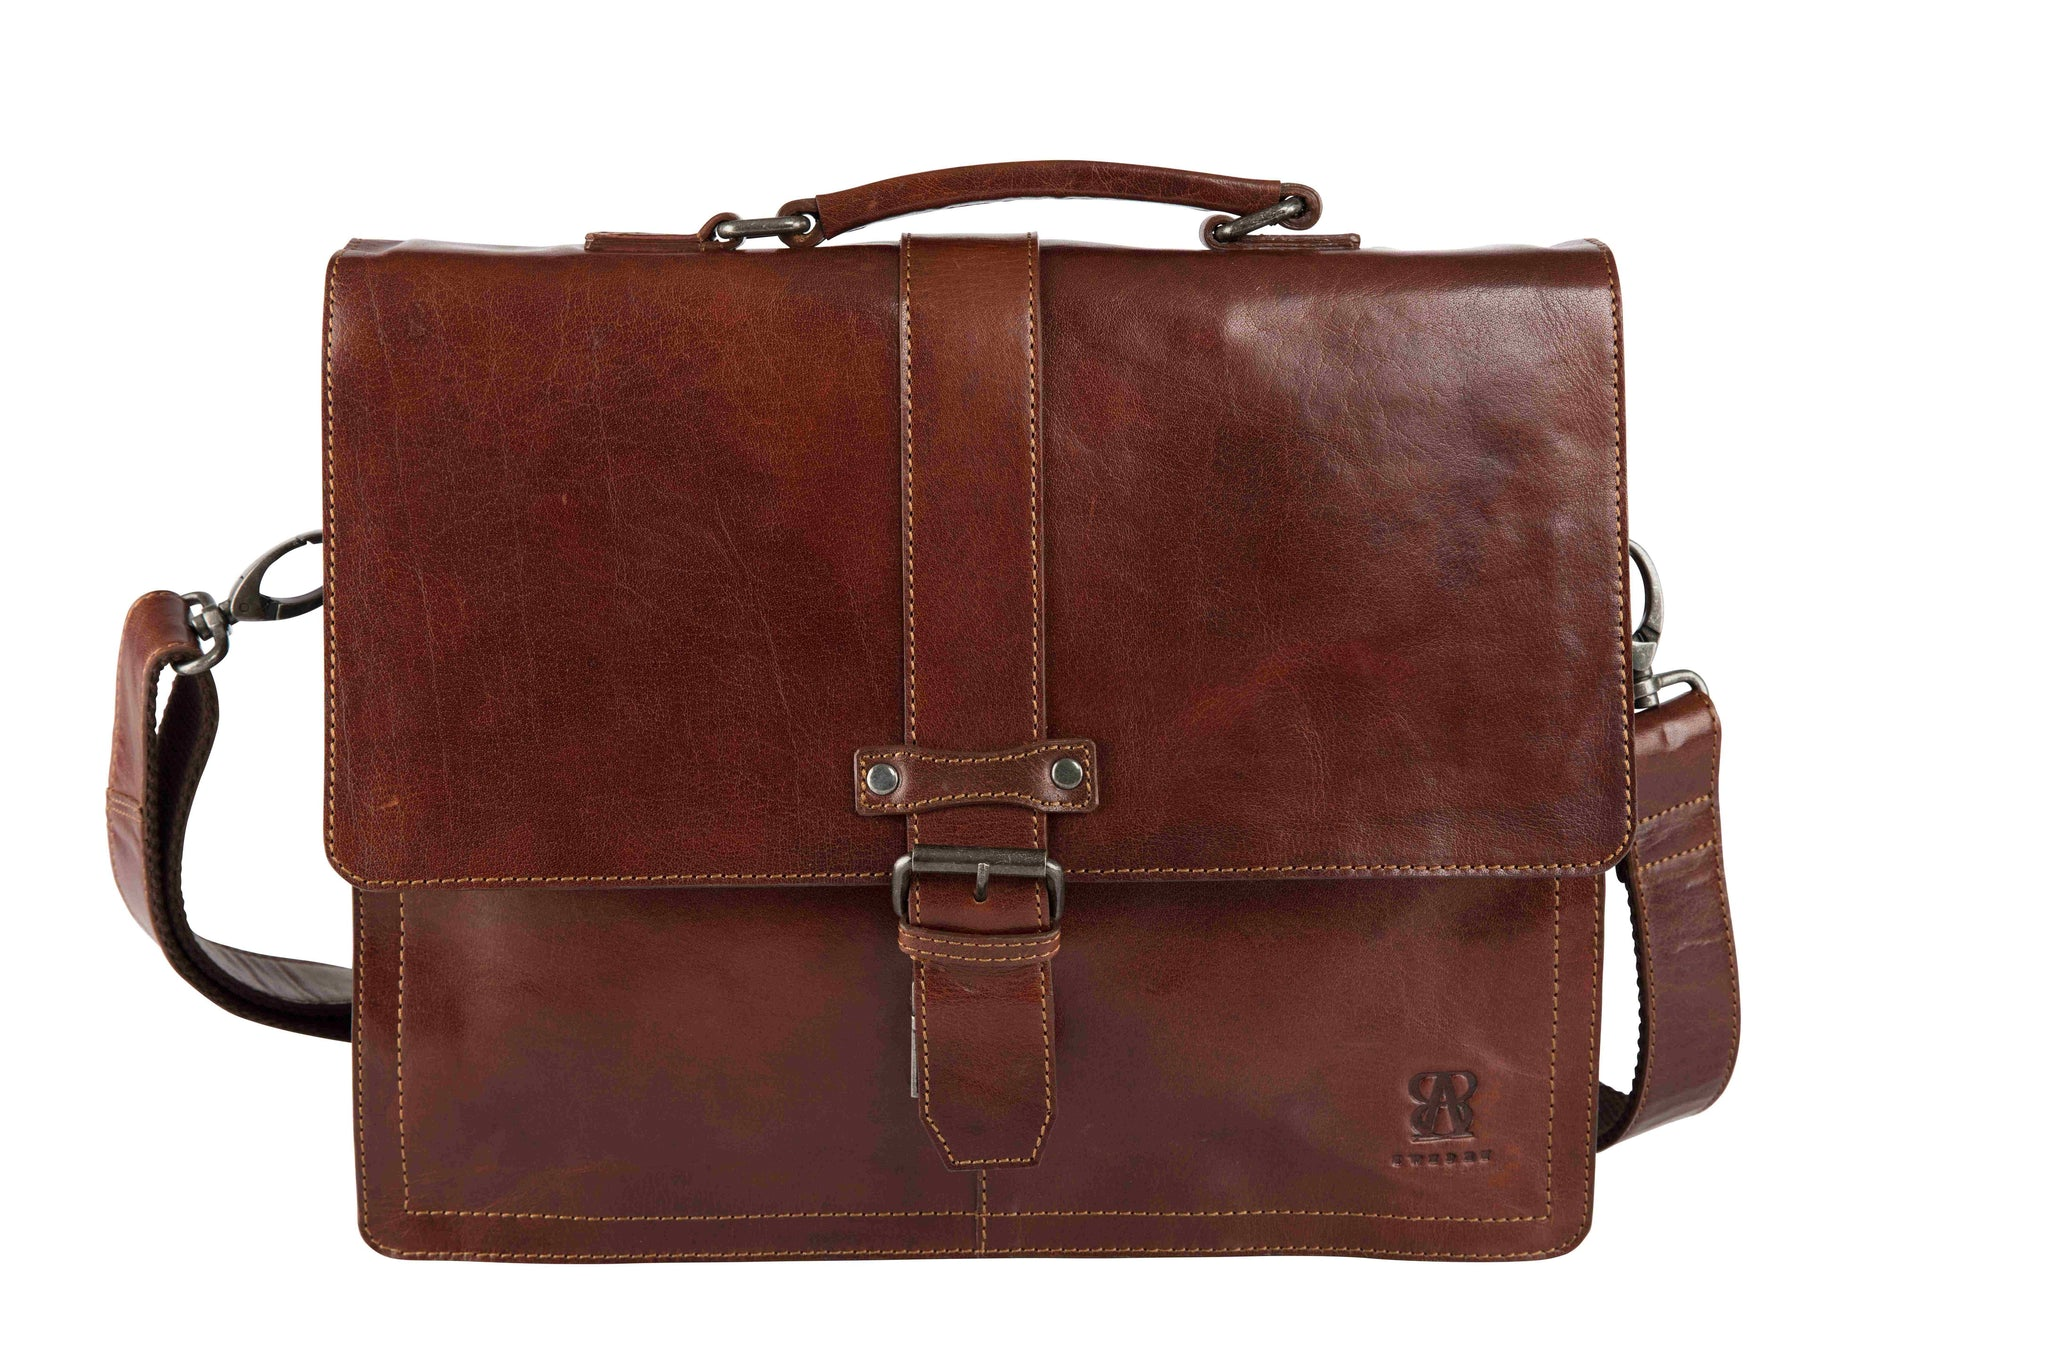 Briefcase 13"